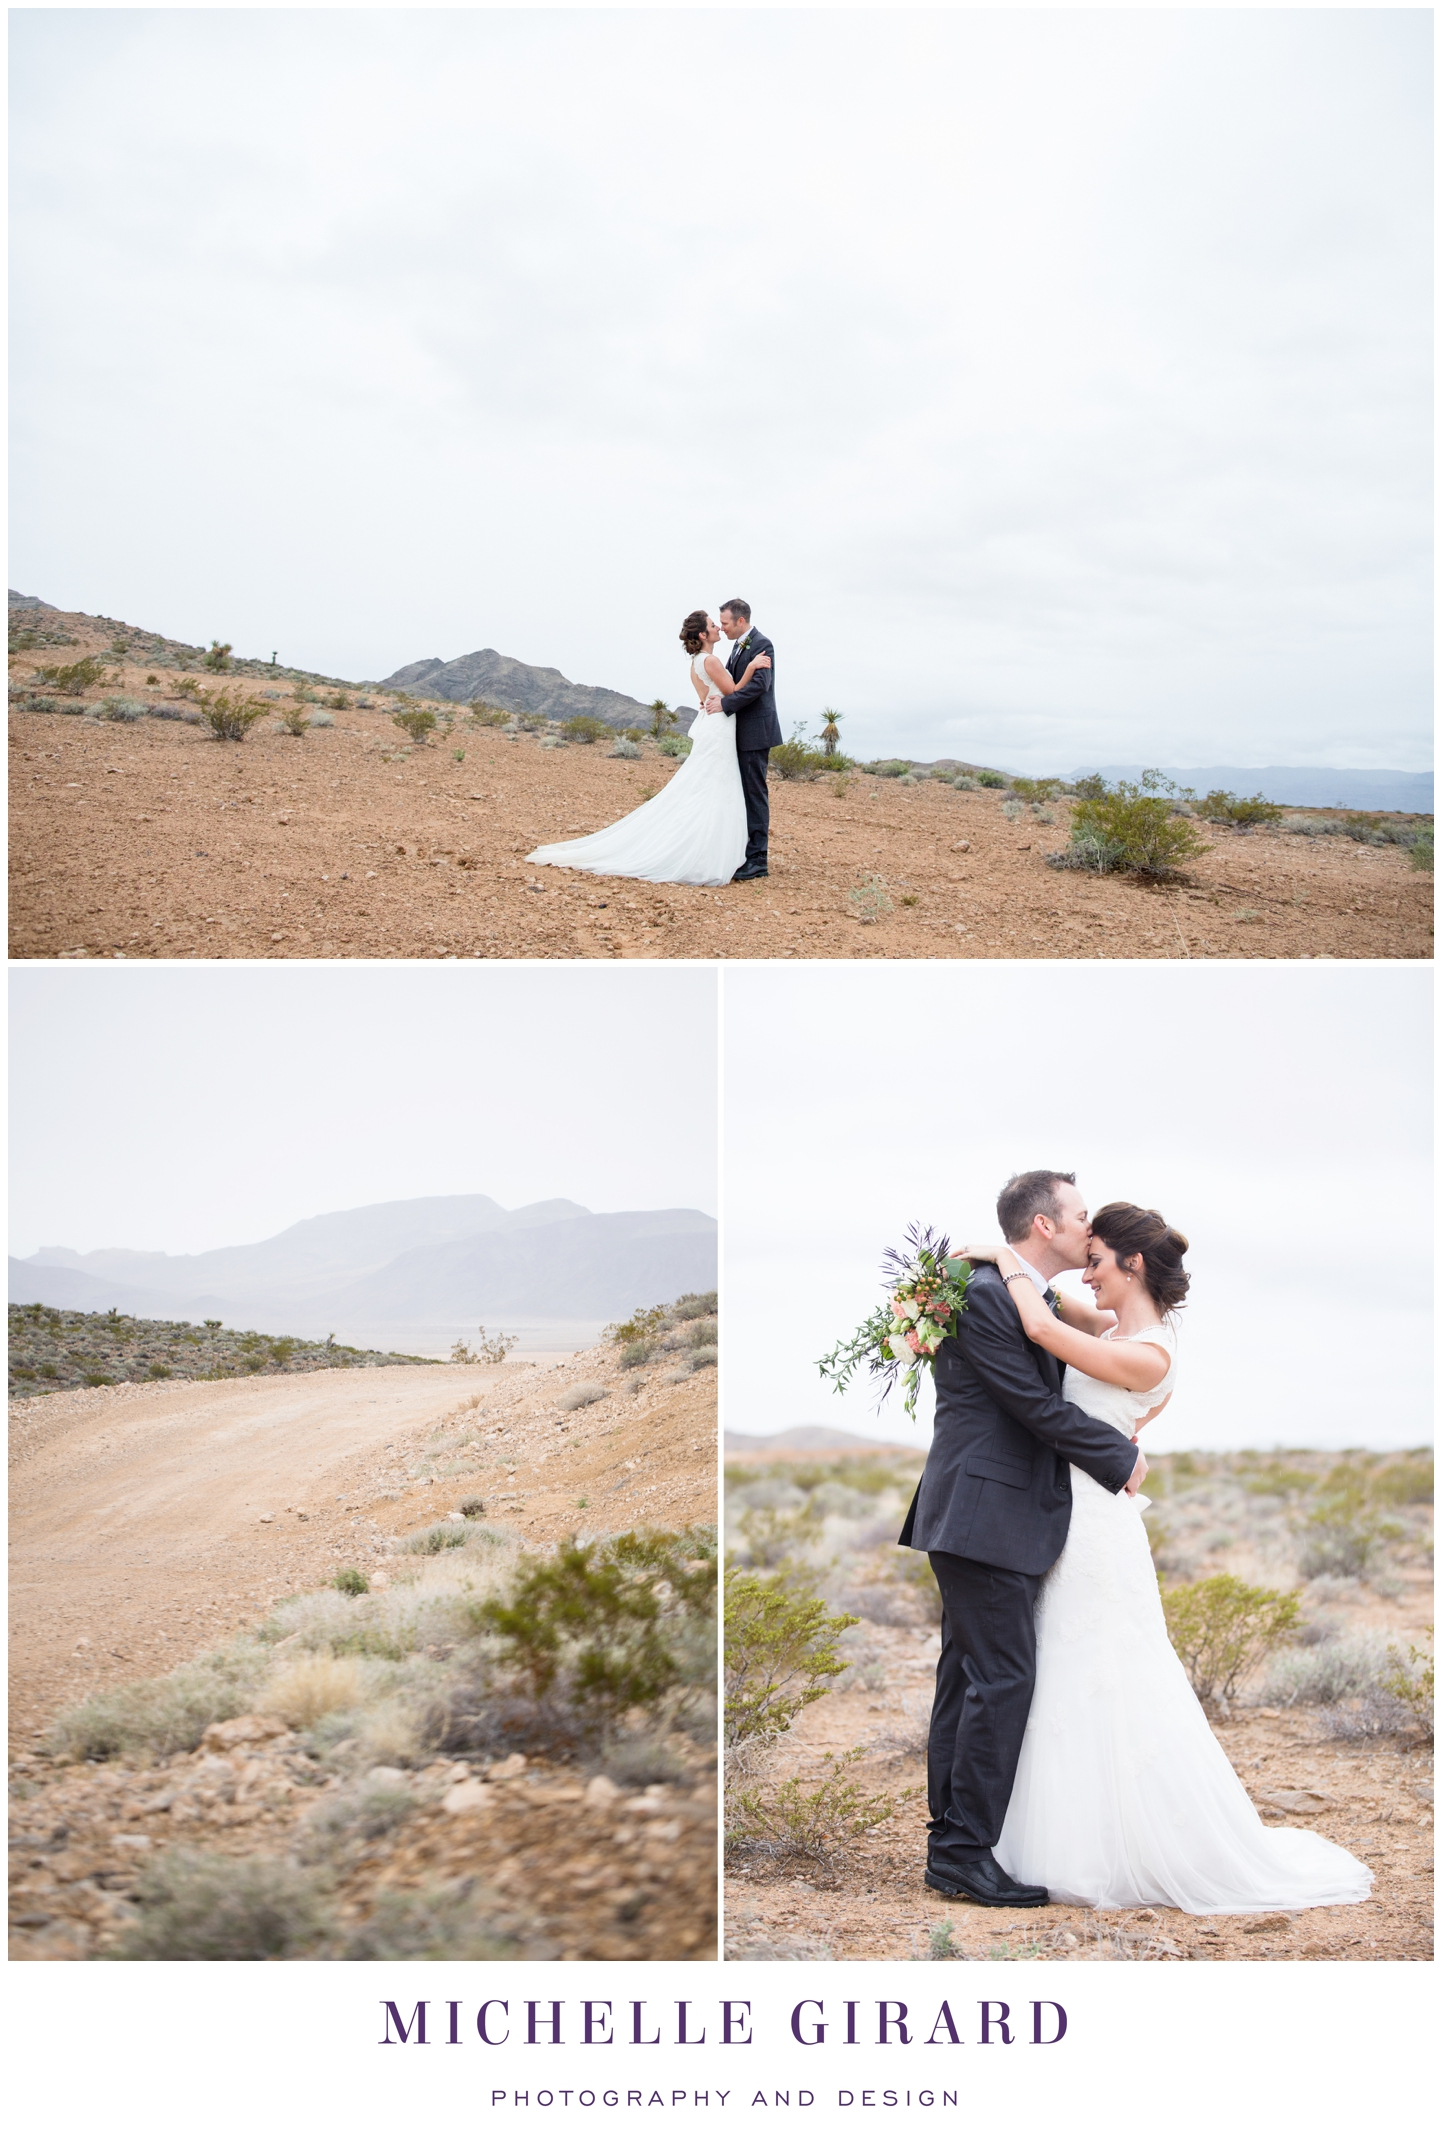 las-vegas-desert-wedding-bride-groom-photography-nevada-michelle-girard-09.jpg